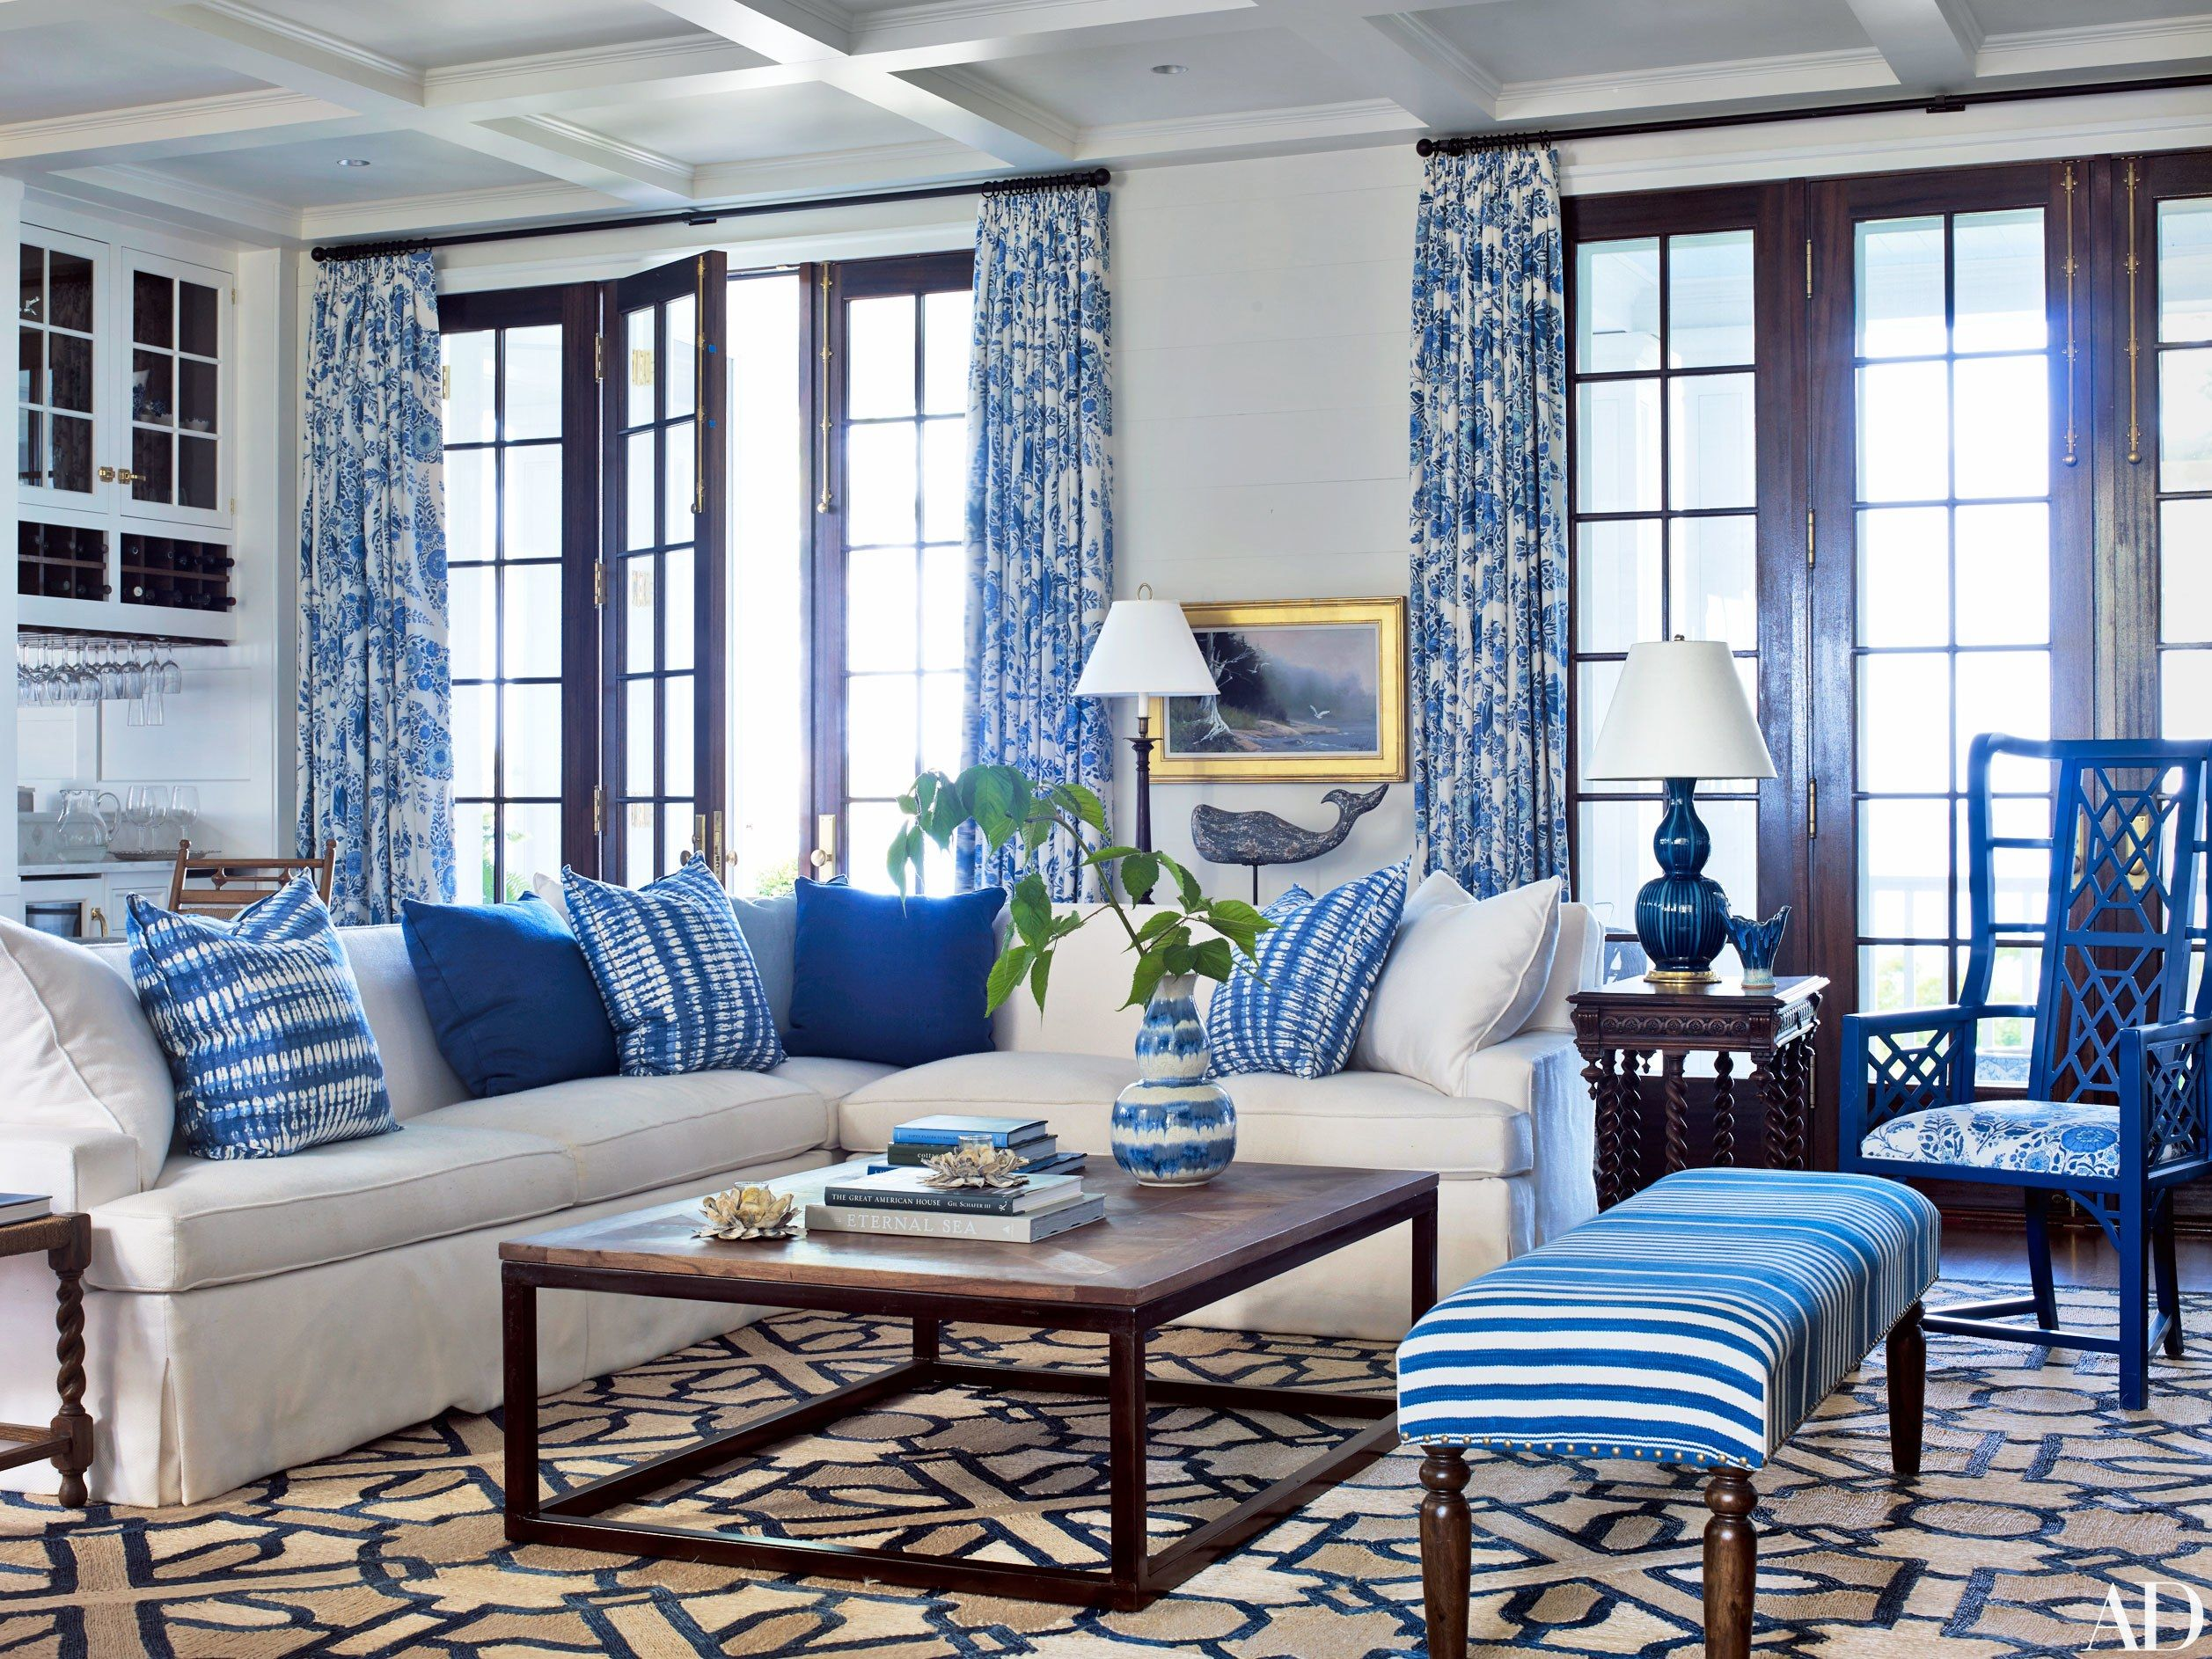 Suzanne Kasler And Les Cole Transform A Compound On The Coast Of Maine Blue And White Living Room Blue Living Room Blue Decor